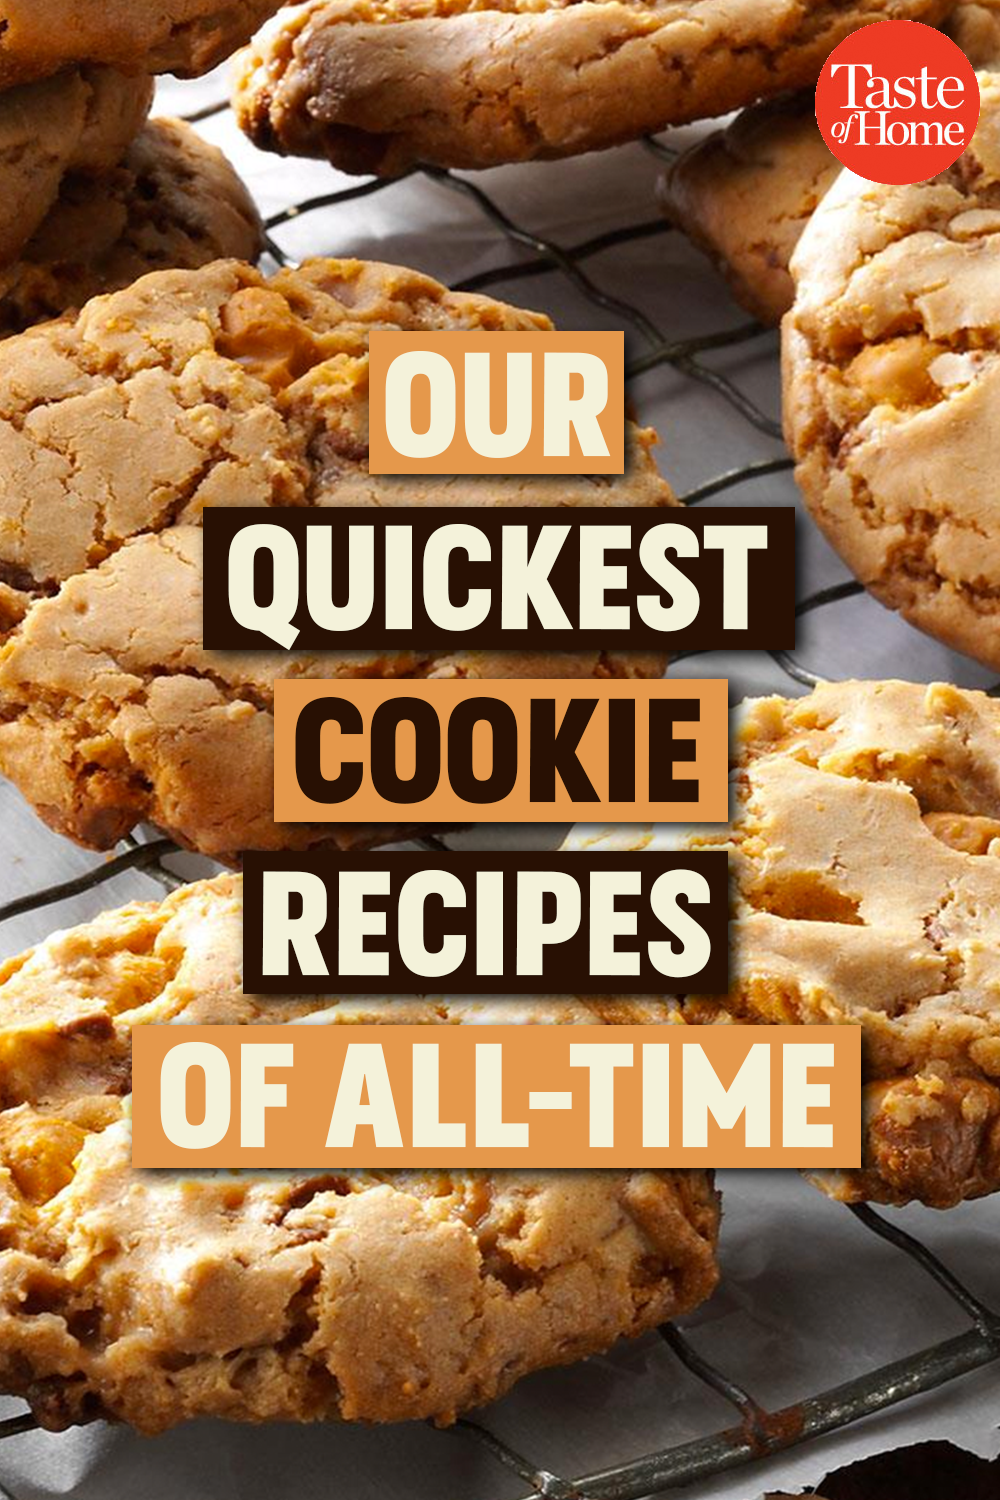 Our Quickest Cookie Recipes of All-Time #quickcookies